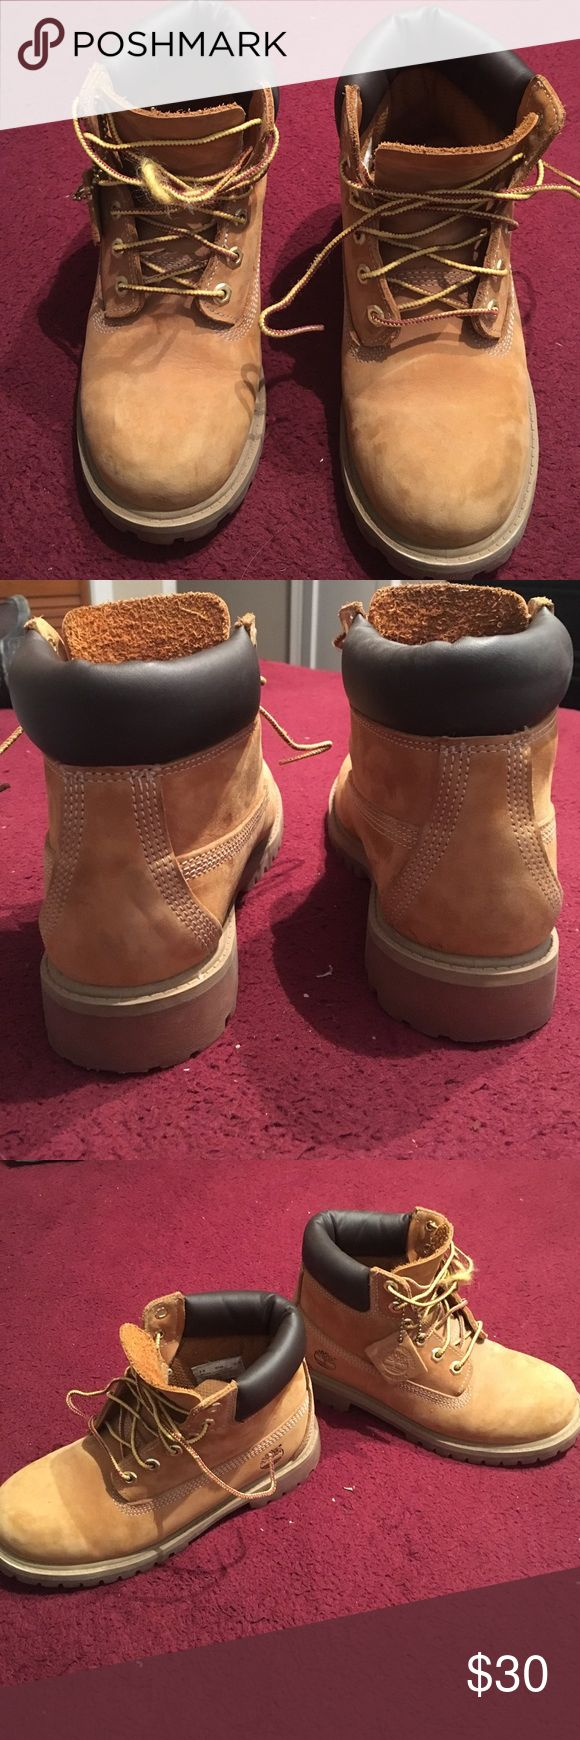 Boys Timberland Boots Great condition! Worn a couple of times. No major scuffs/scratches. Shoe lace is a bit messed up but still intact. Boots are chestnut color and suede leather. Sold as is condition. Timberland Shoes Boots